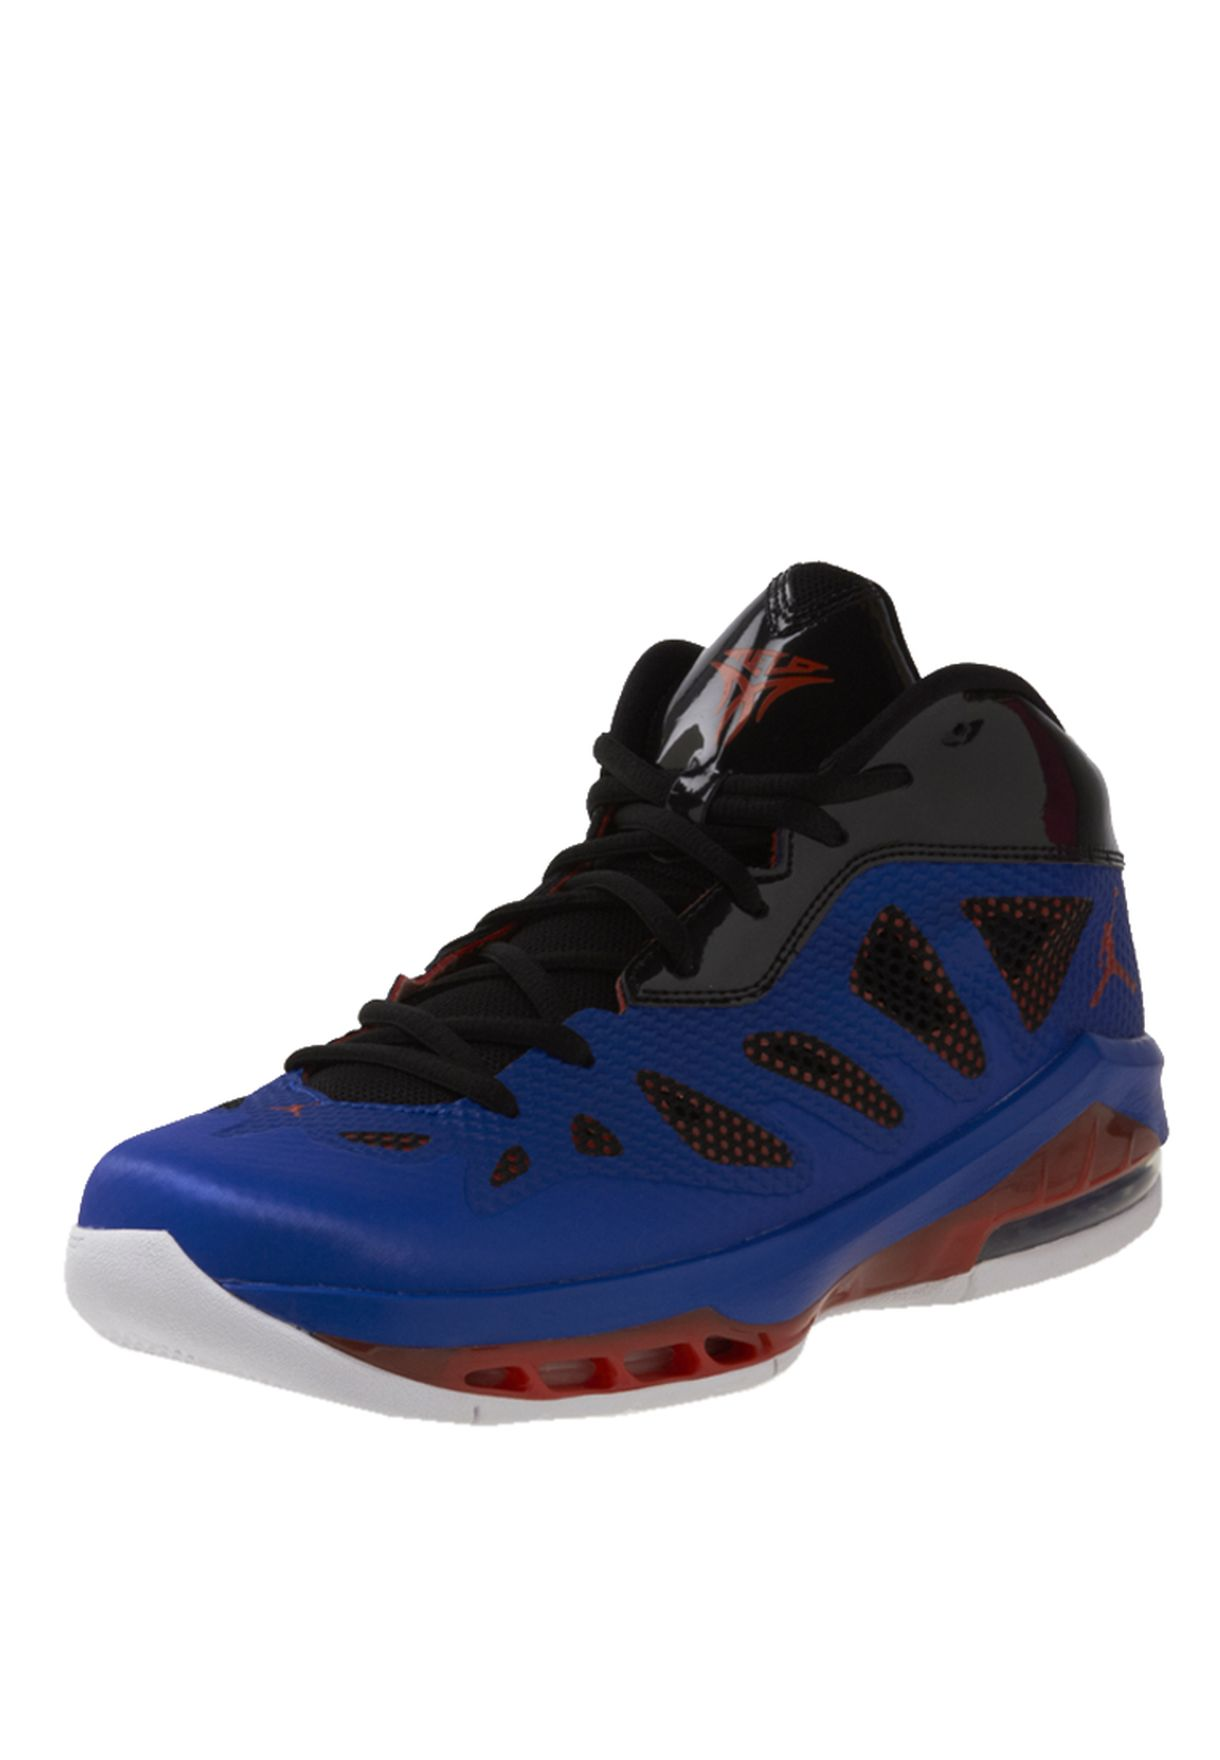 Shop Nike Blue Basketball Shoes 542240 407 For Men In Qatar